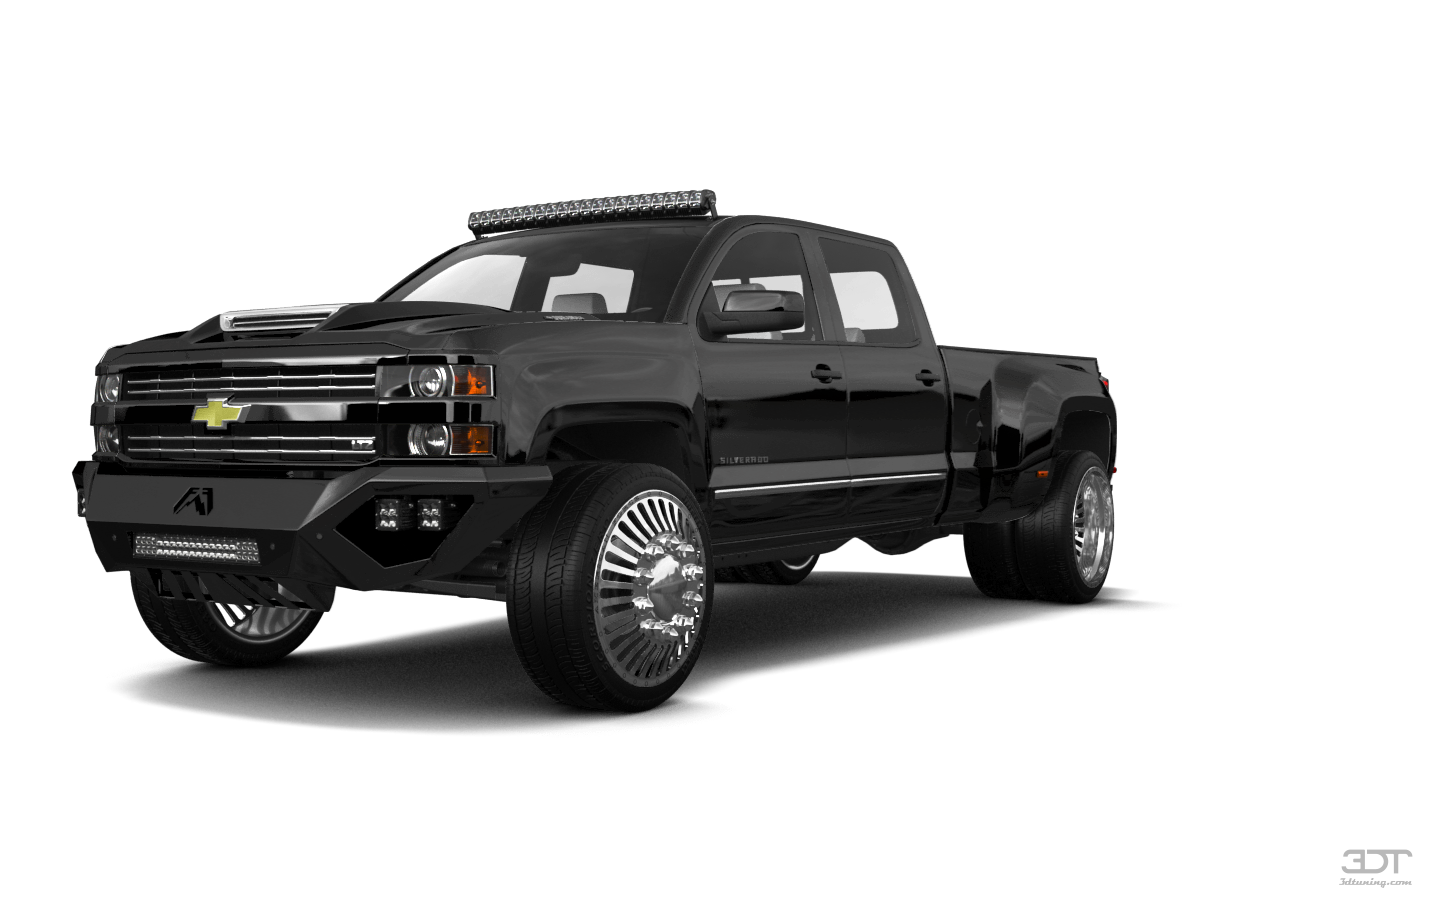 Chevrolet Silverado 3500 4 Door pickup truck 2015 tuning